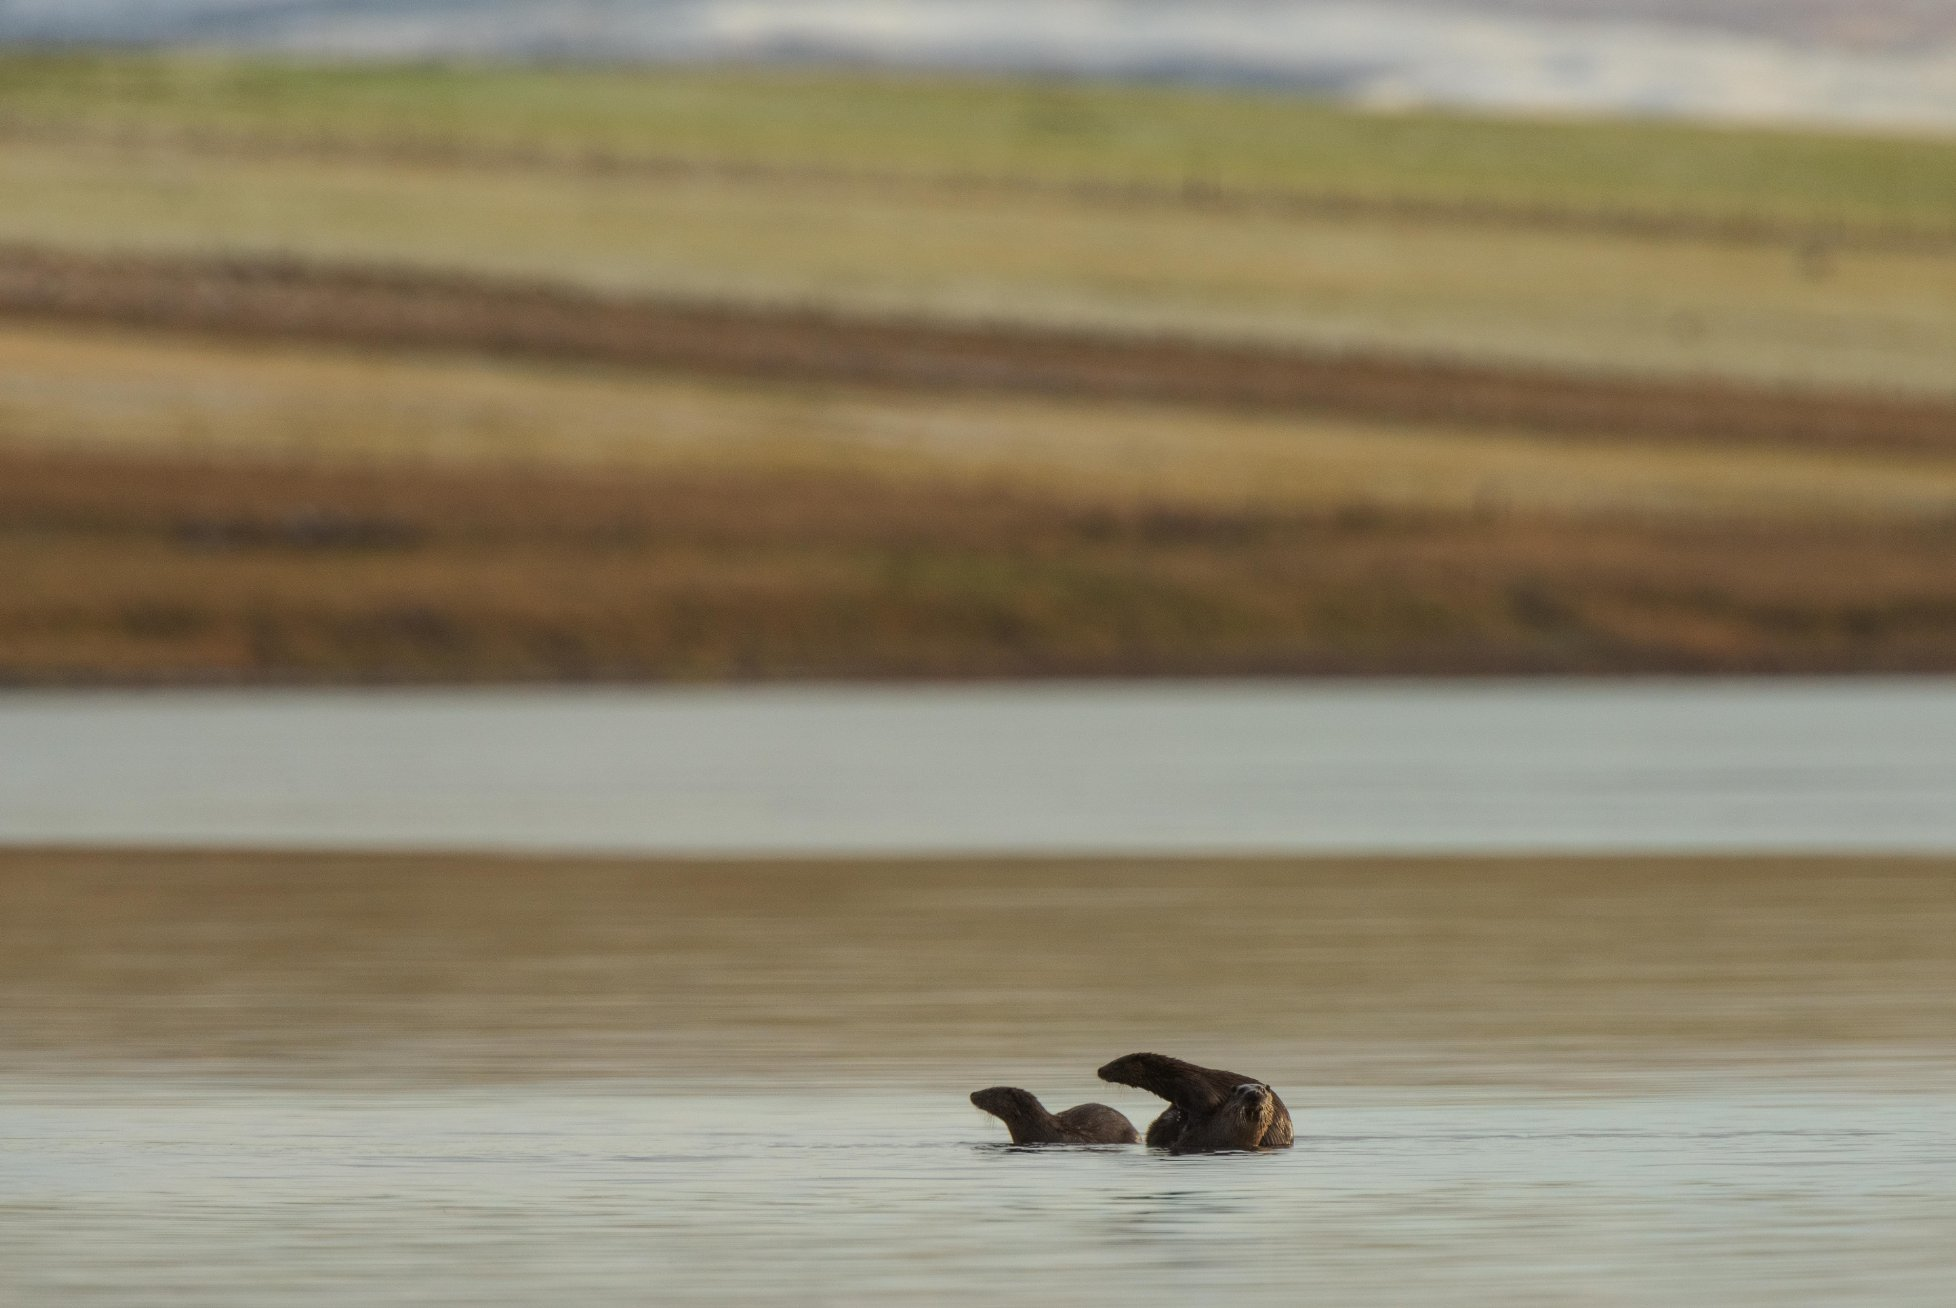 Otter family in Stenness Loch - image by Raymond Besant